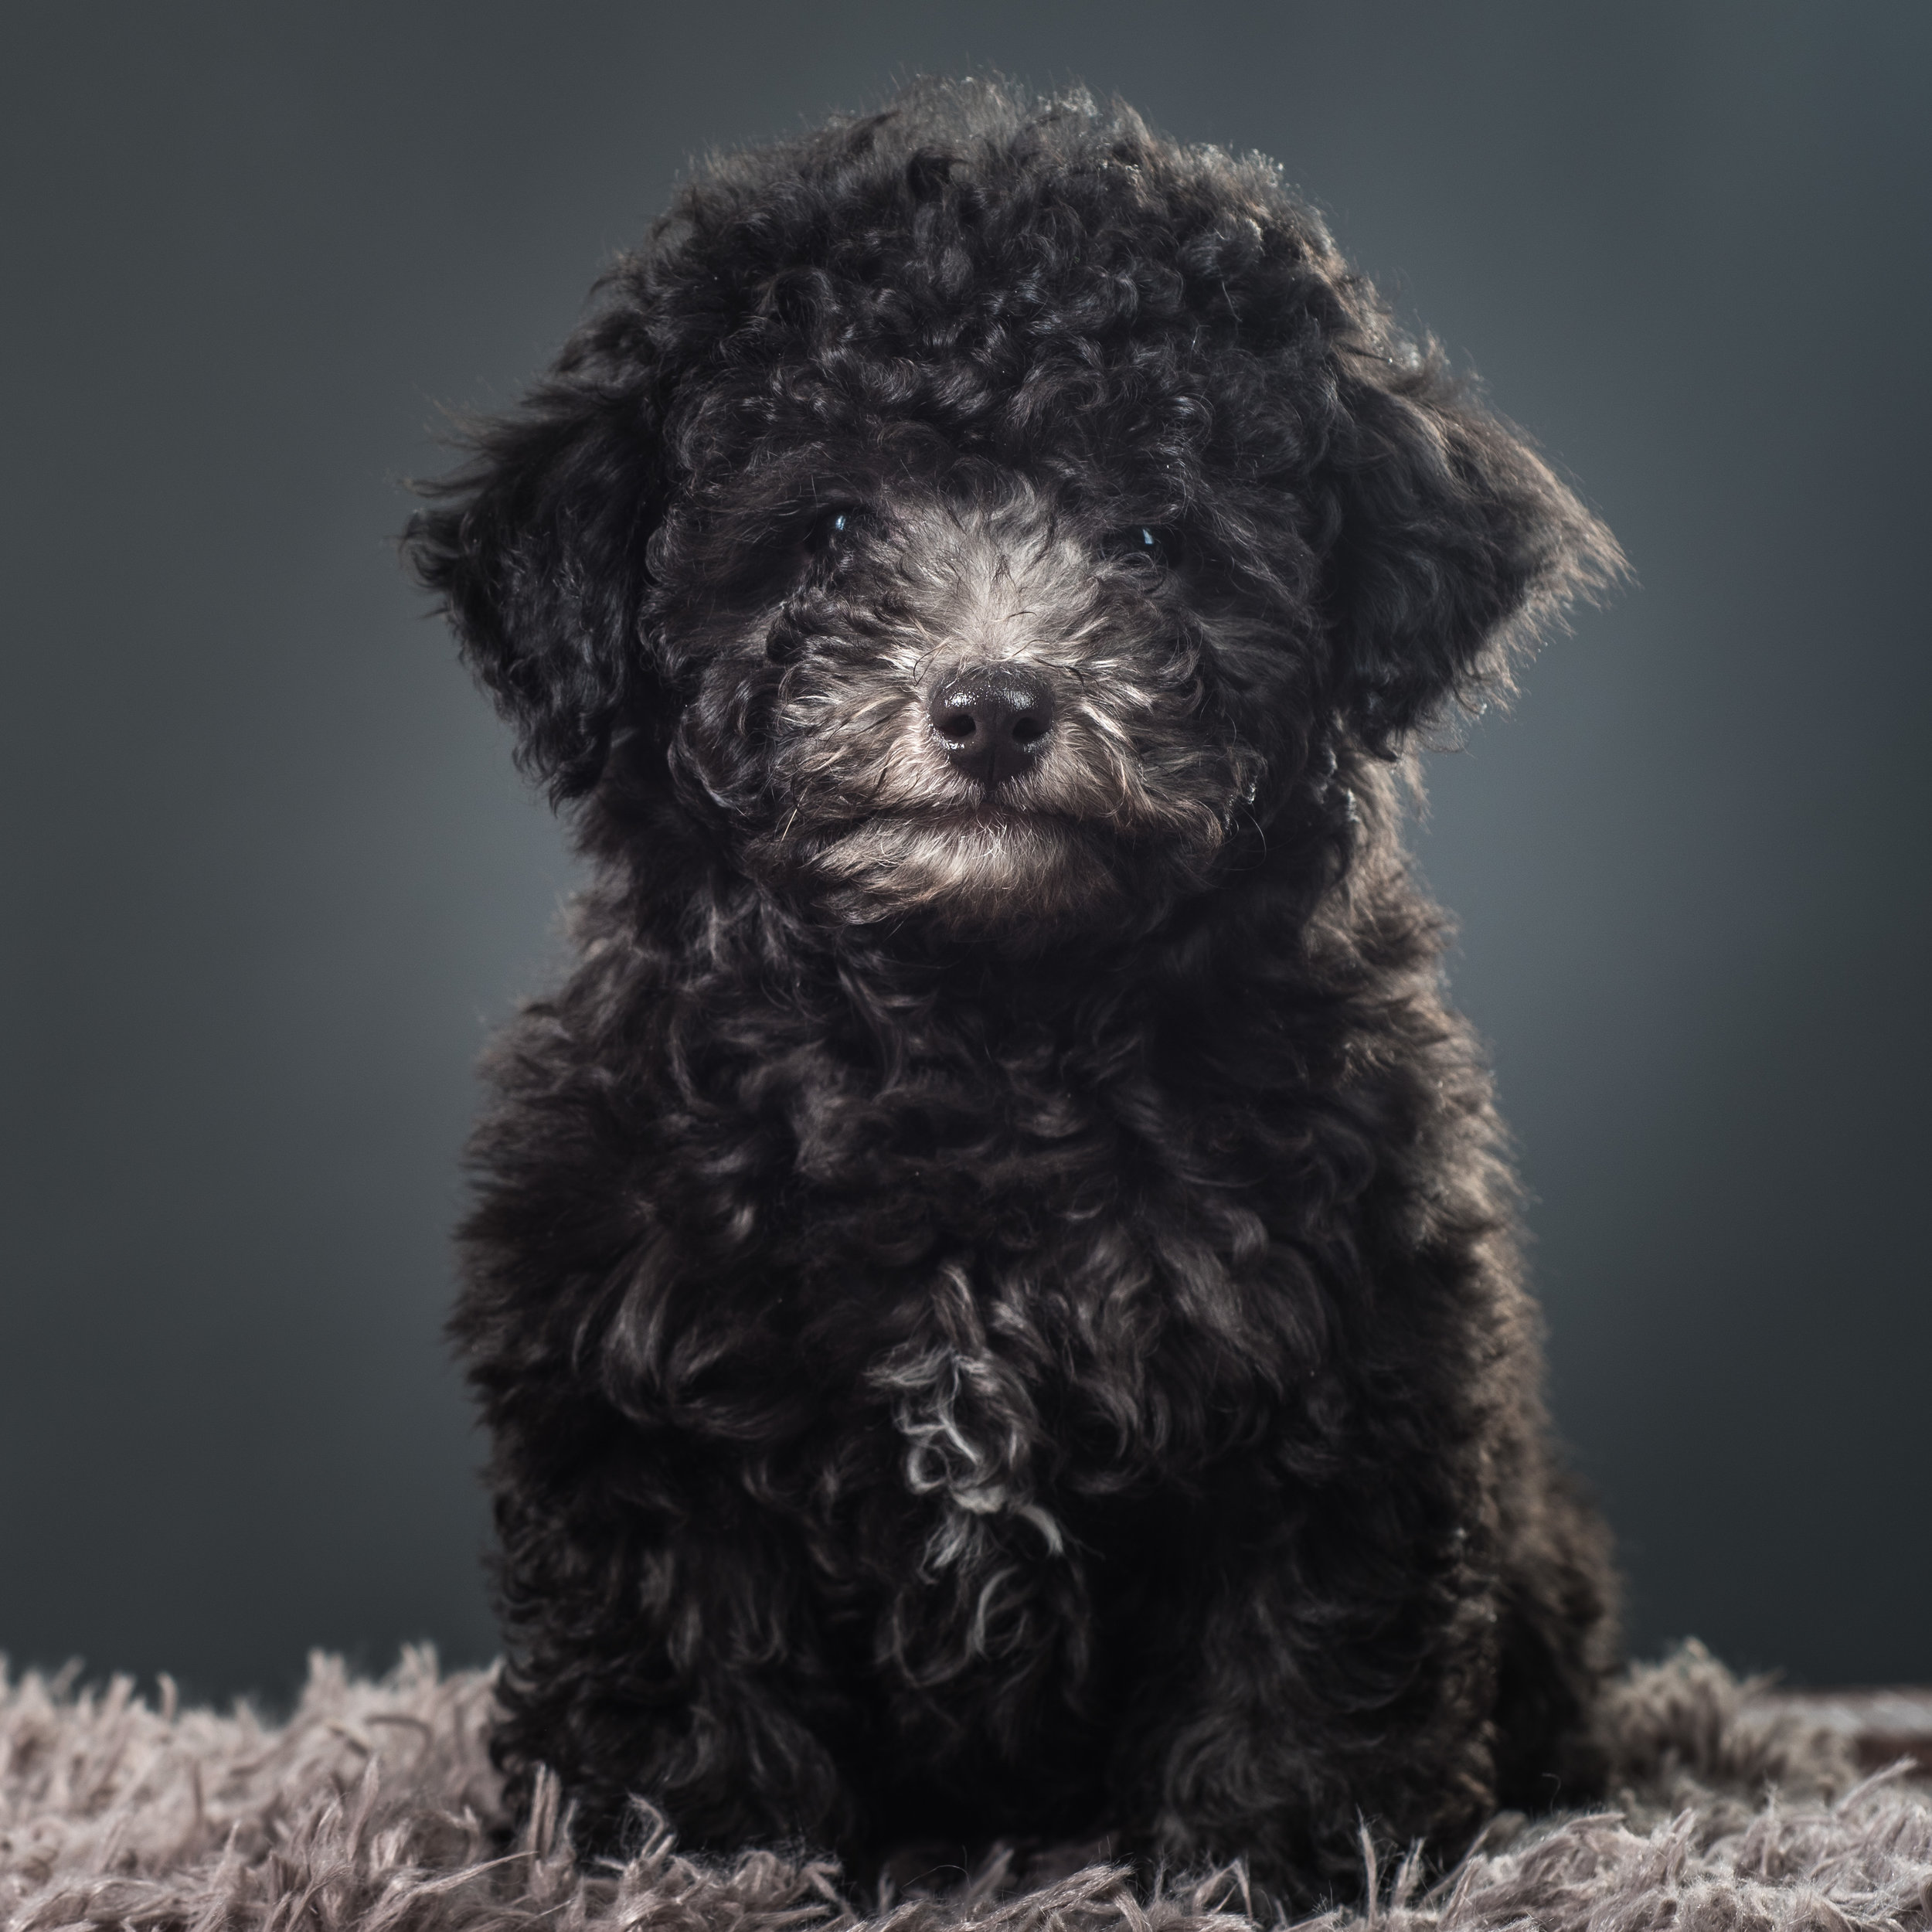 The Toy Poodle variety steals my heart! I just love how cute these little munchkins are in the Poodle world!